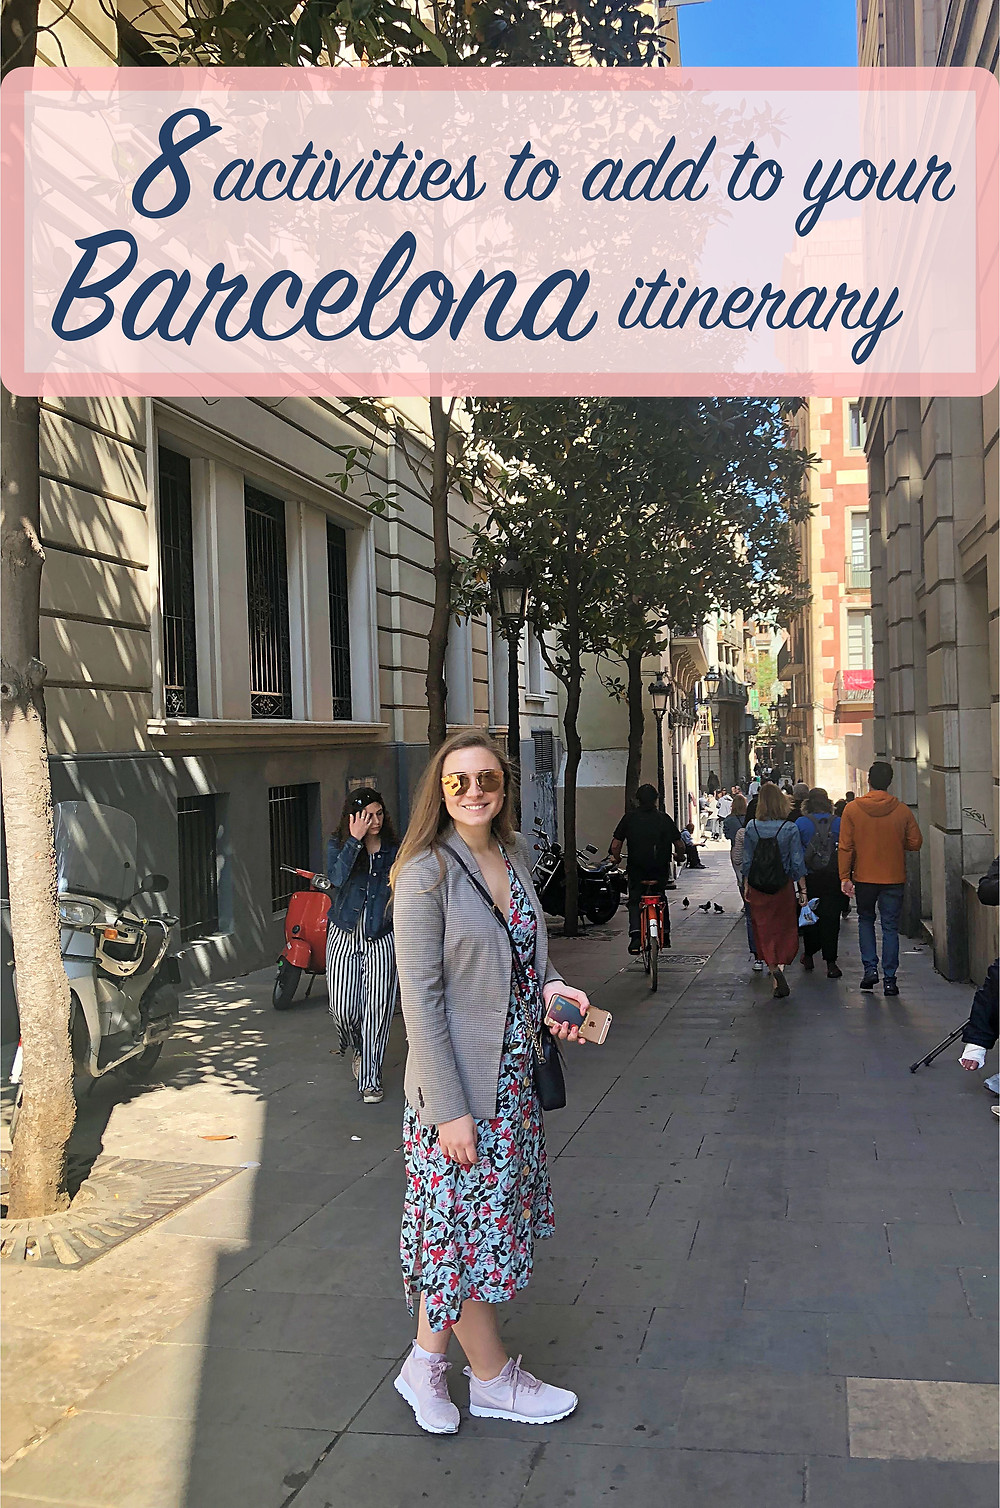 """<img src=""""alt-text-seo-post.jpg"""" alt=""""Girl in Barcelona with text overlay – 8 activities to add to your Barcelona itinerary"""""""" data-pin-description=""""8 activities to do in barcelona #barcelonabachelorette #8activitiesinbarcelona #bacheloretteinbarcelona #activitiesinbarcelona #barcelona #whattodoinbarcelona"""">"""